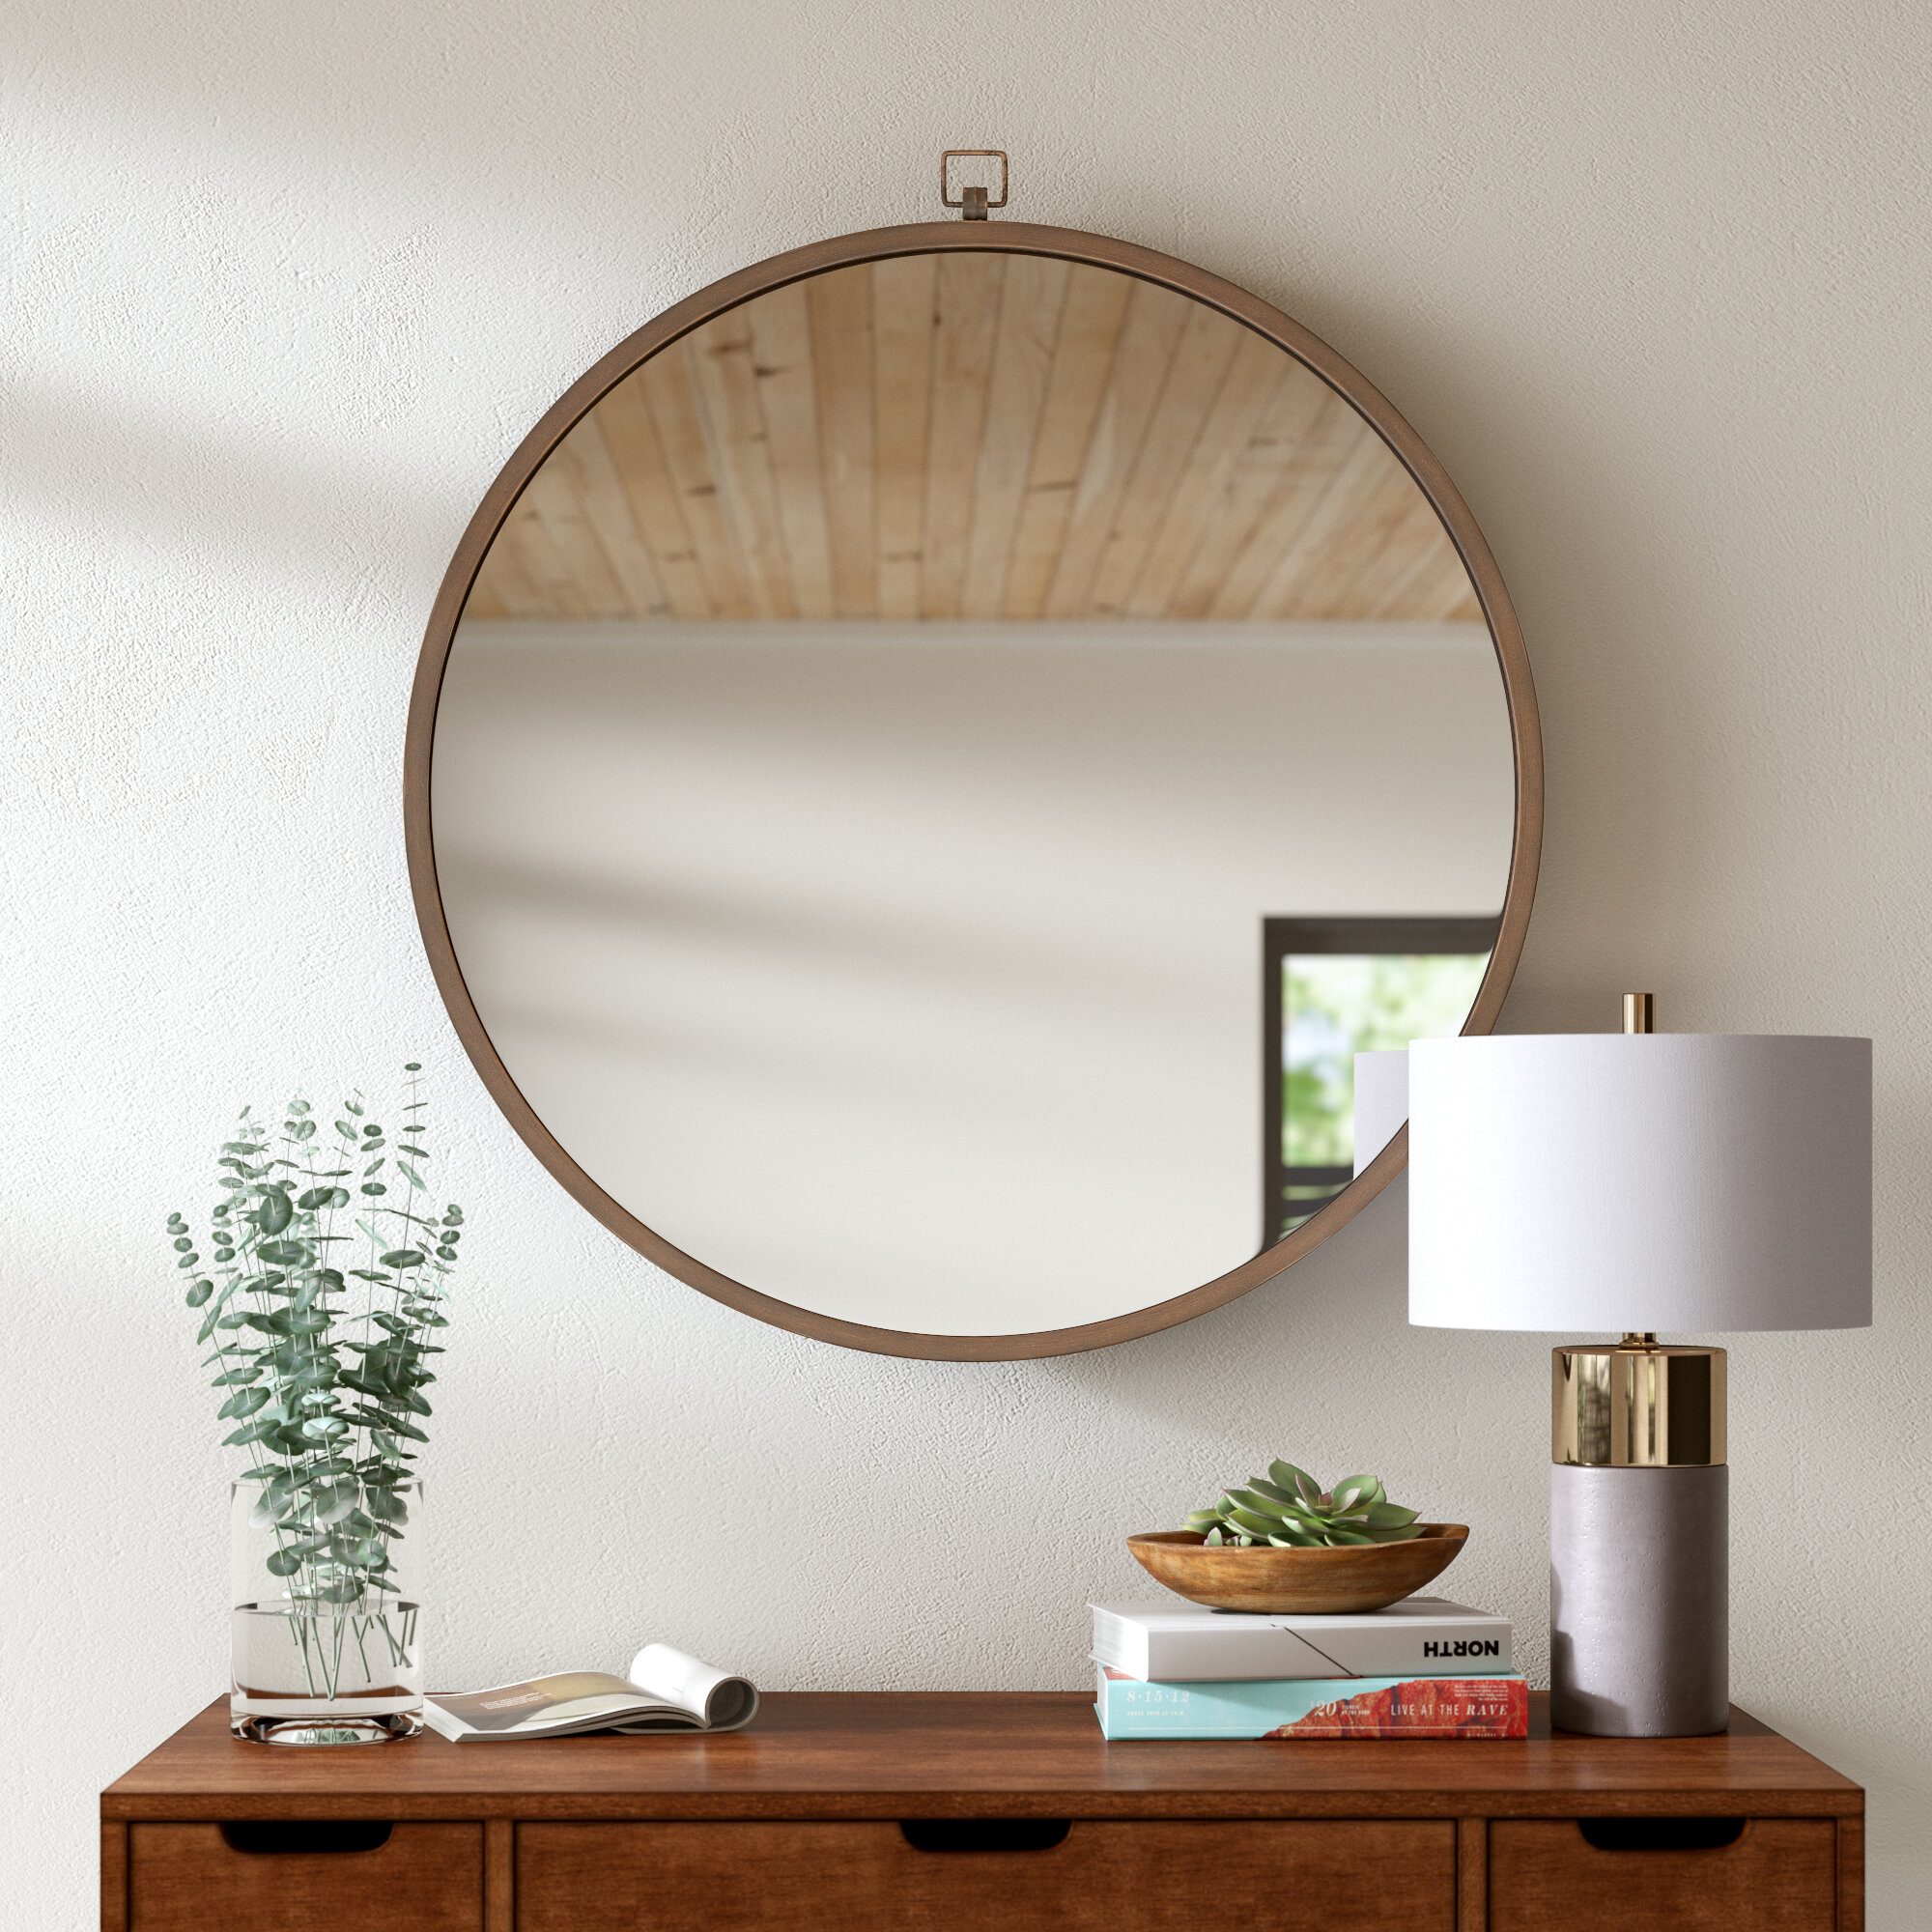 Modern Mirrors Sale | Allmodern For Loftis Modern & Contemporary Accent Wall Mirrors (View 20 of 20)